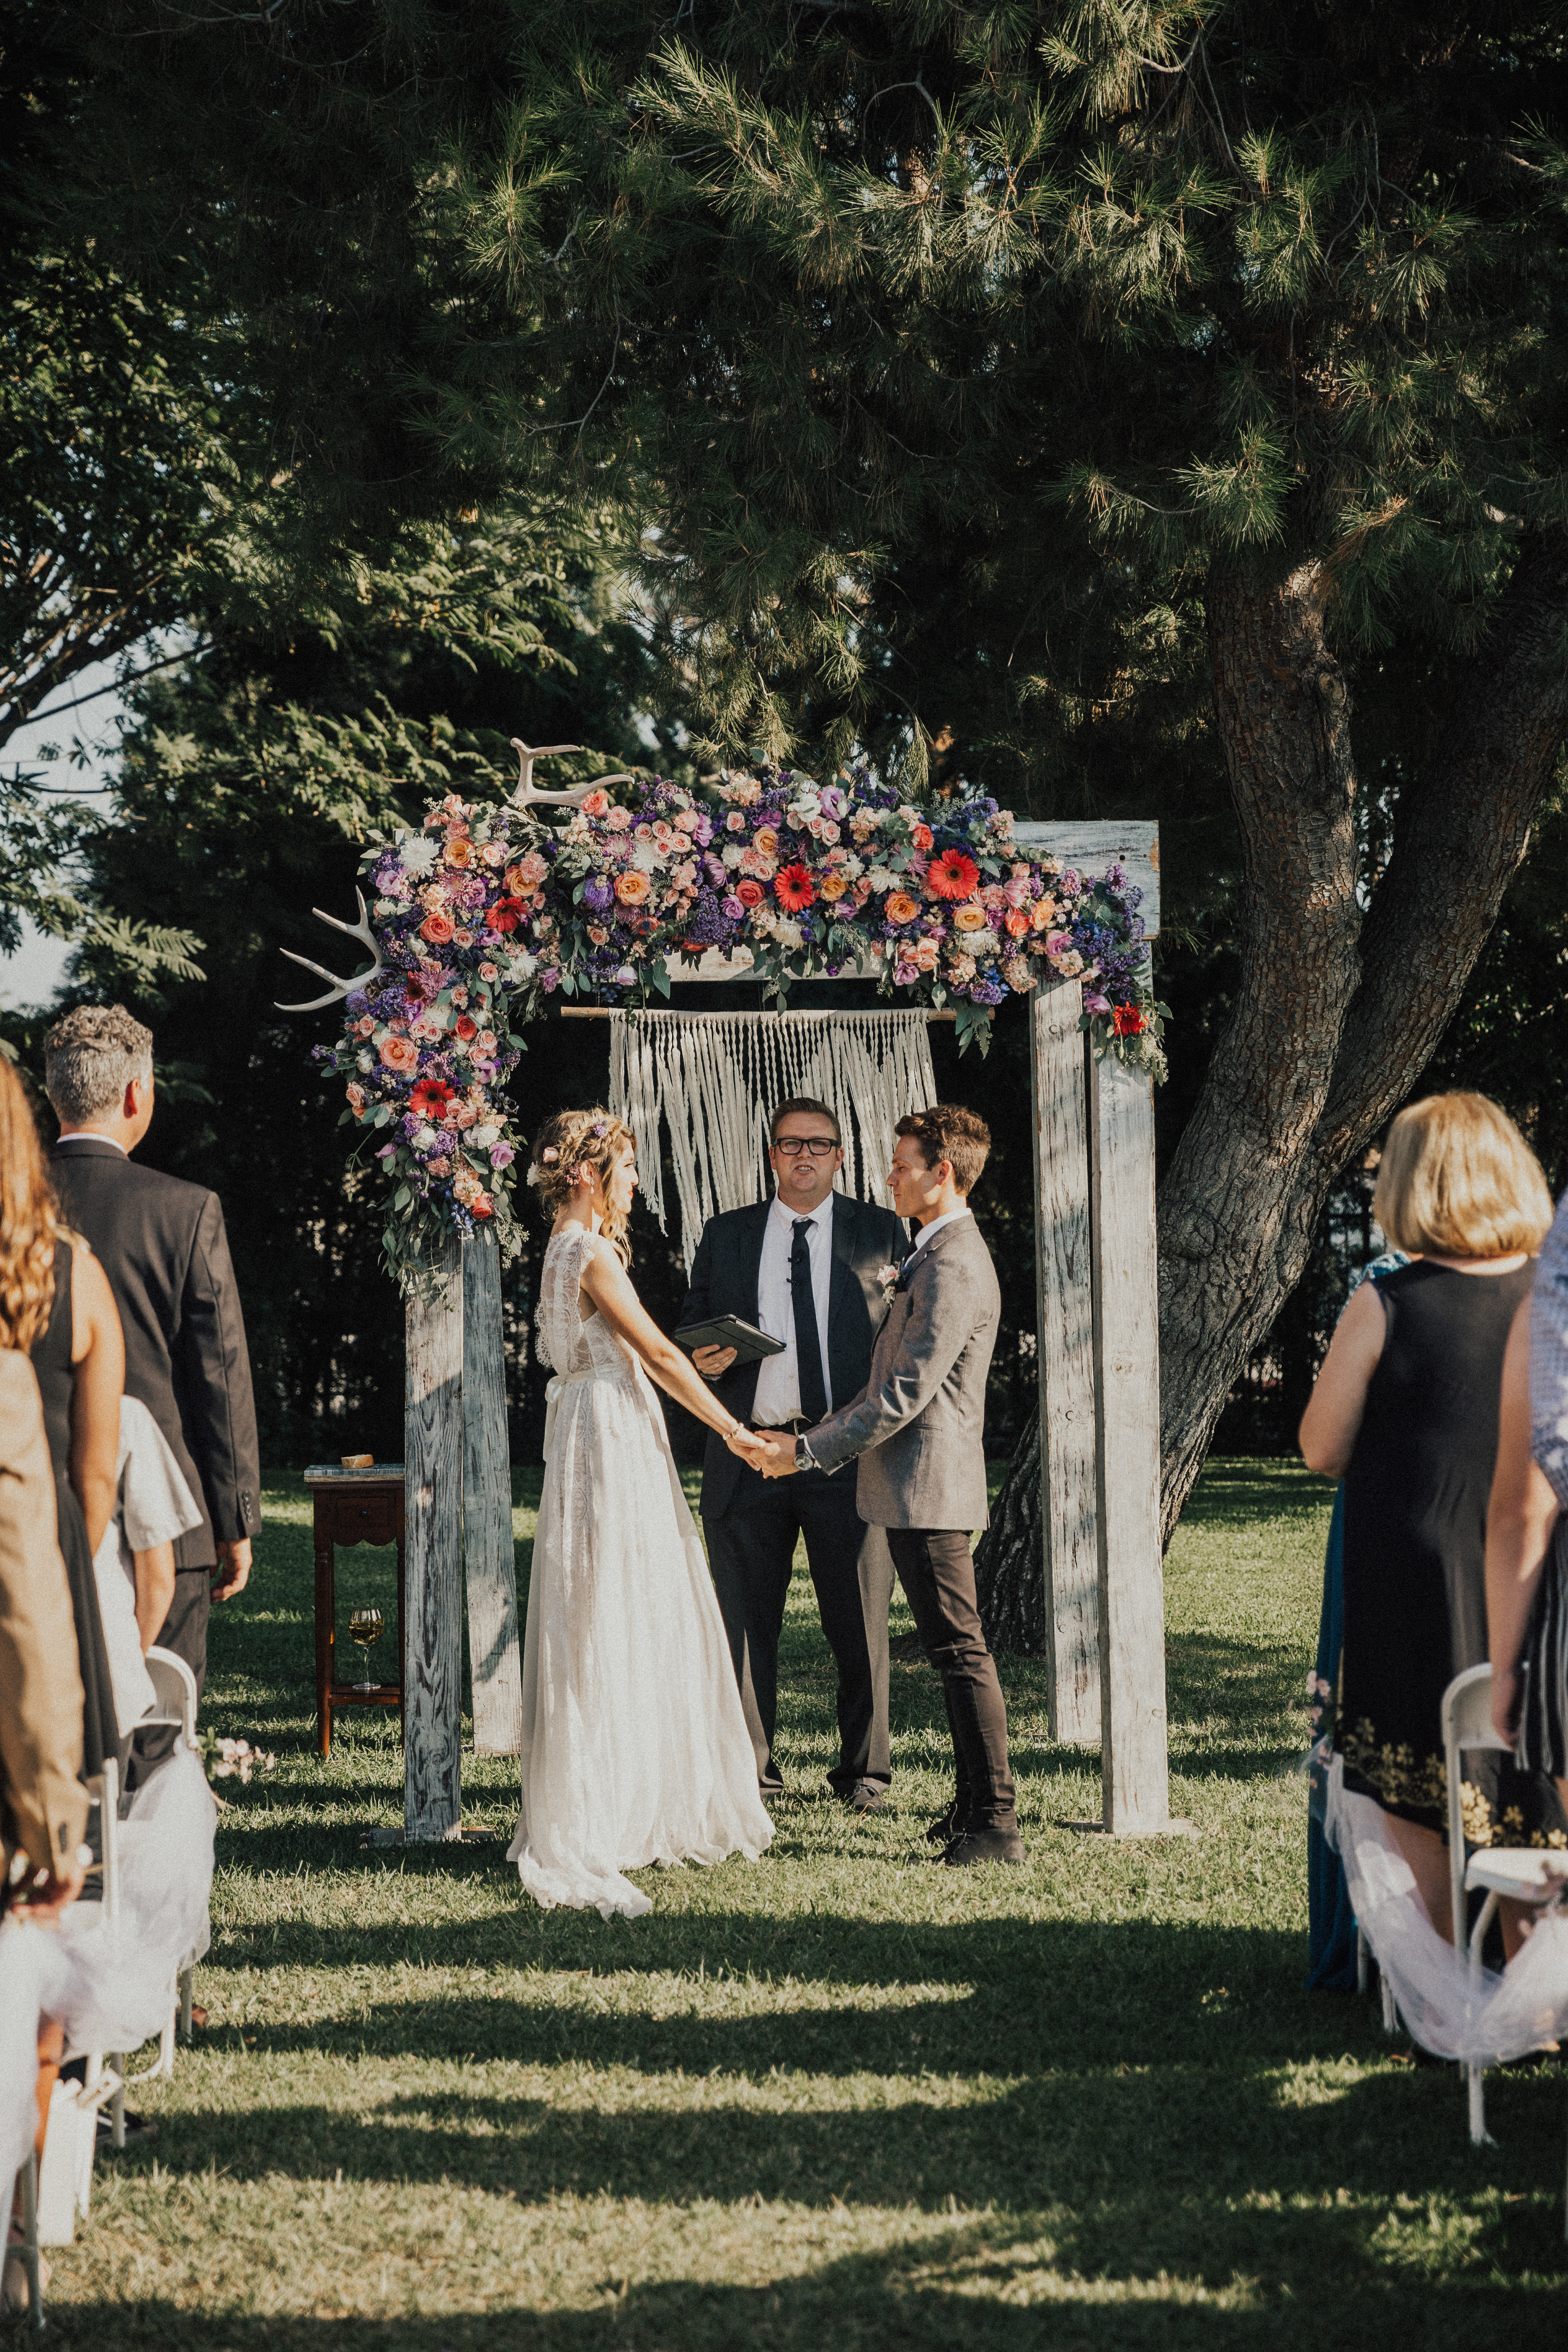 Lavender Wedding with a beautiful full arch